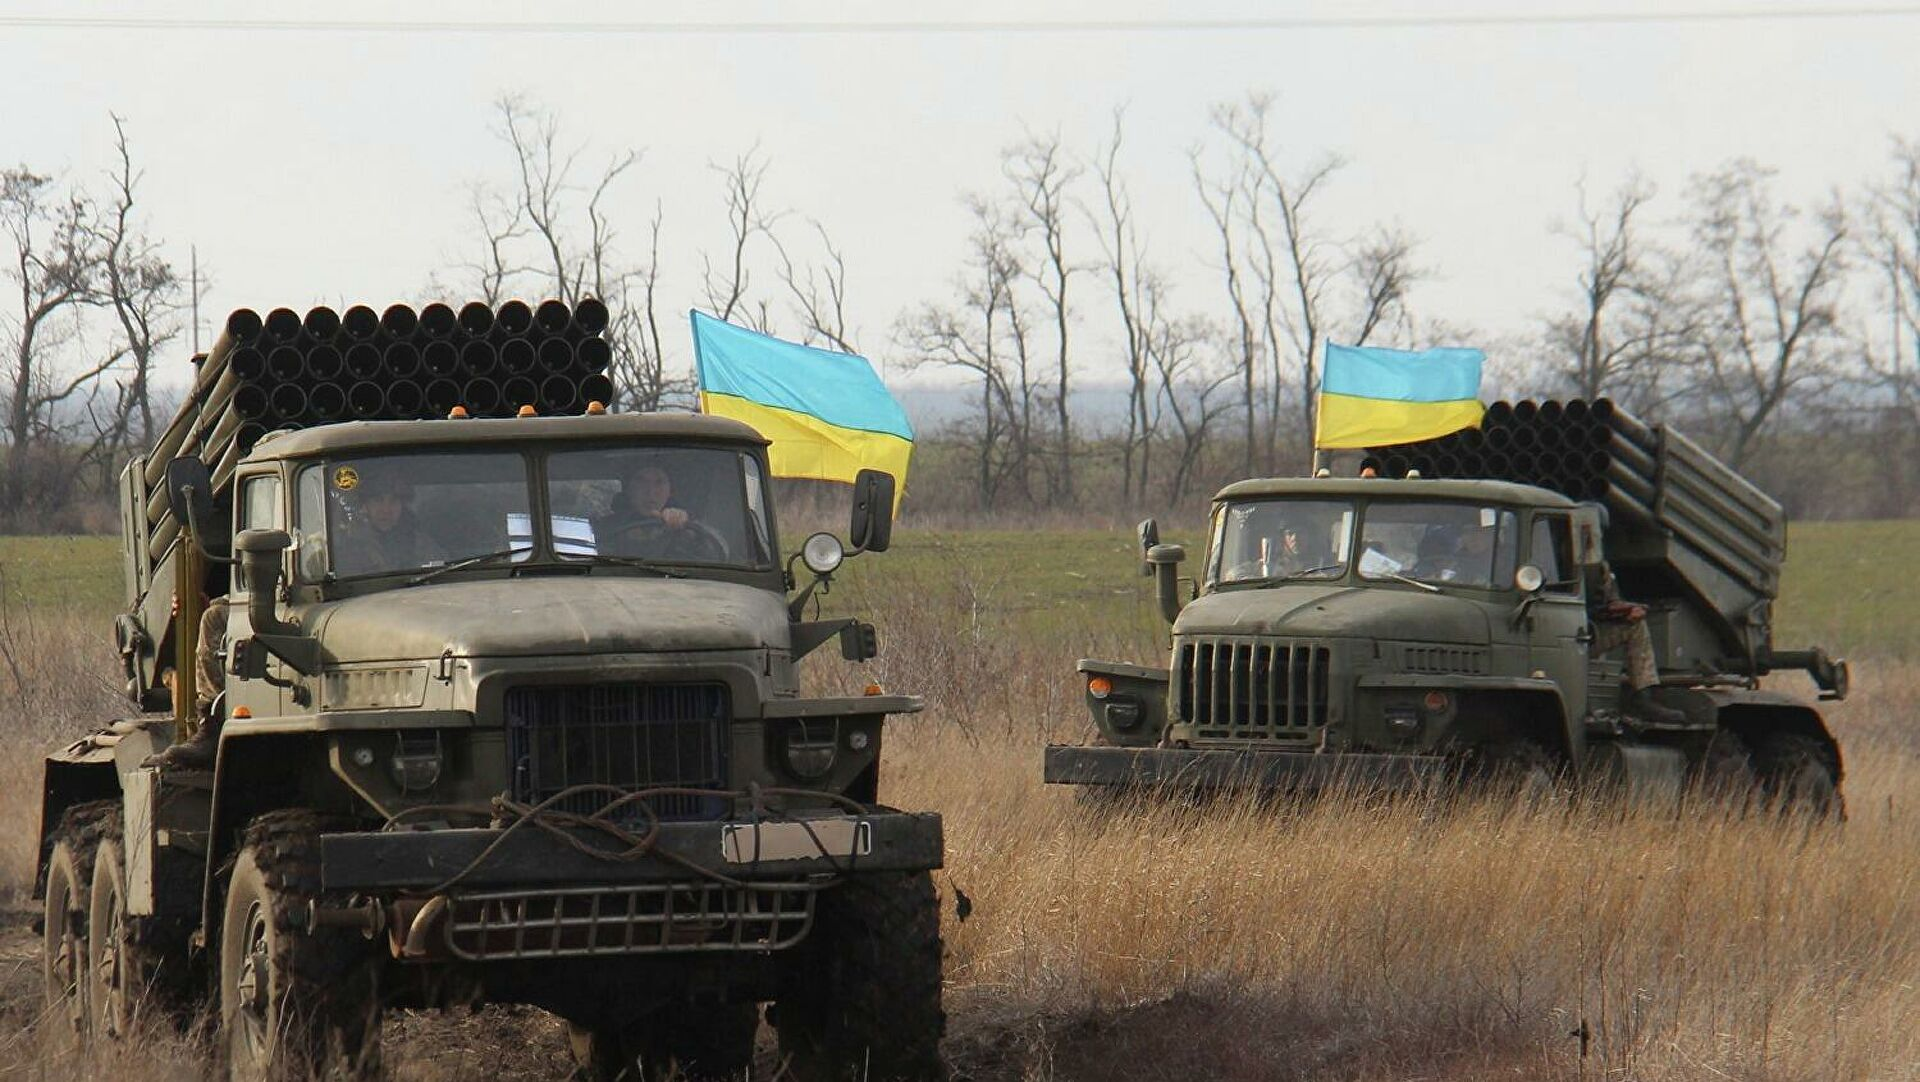 """According to the Karabakh scenario"": expert tells what Ukrainian Armed Forces prepar for LPR claiming independence"